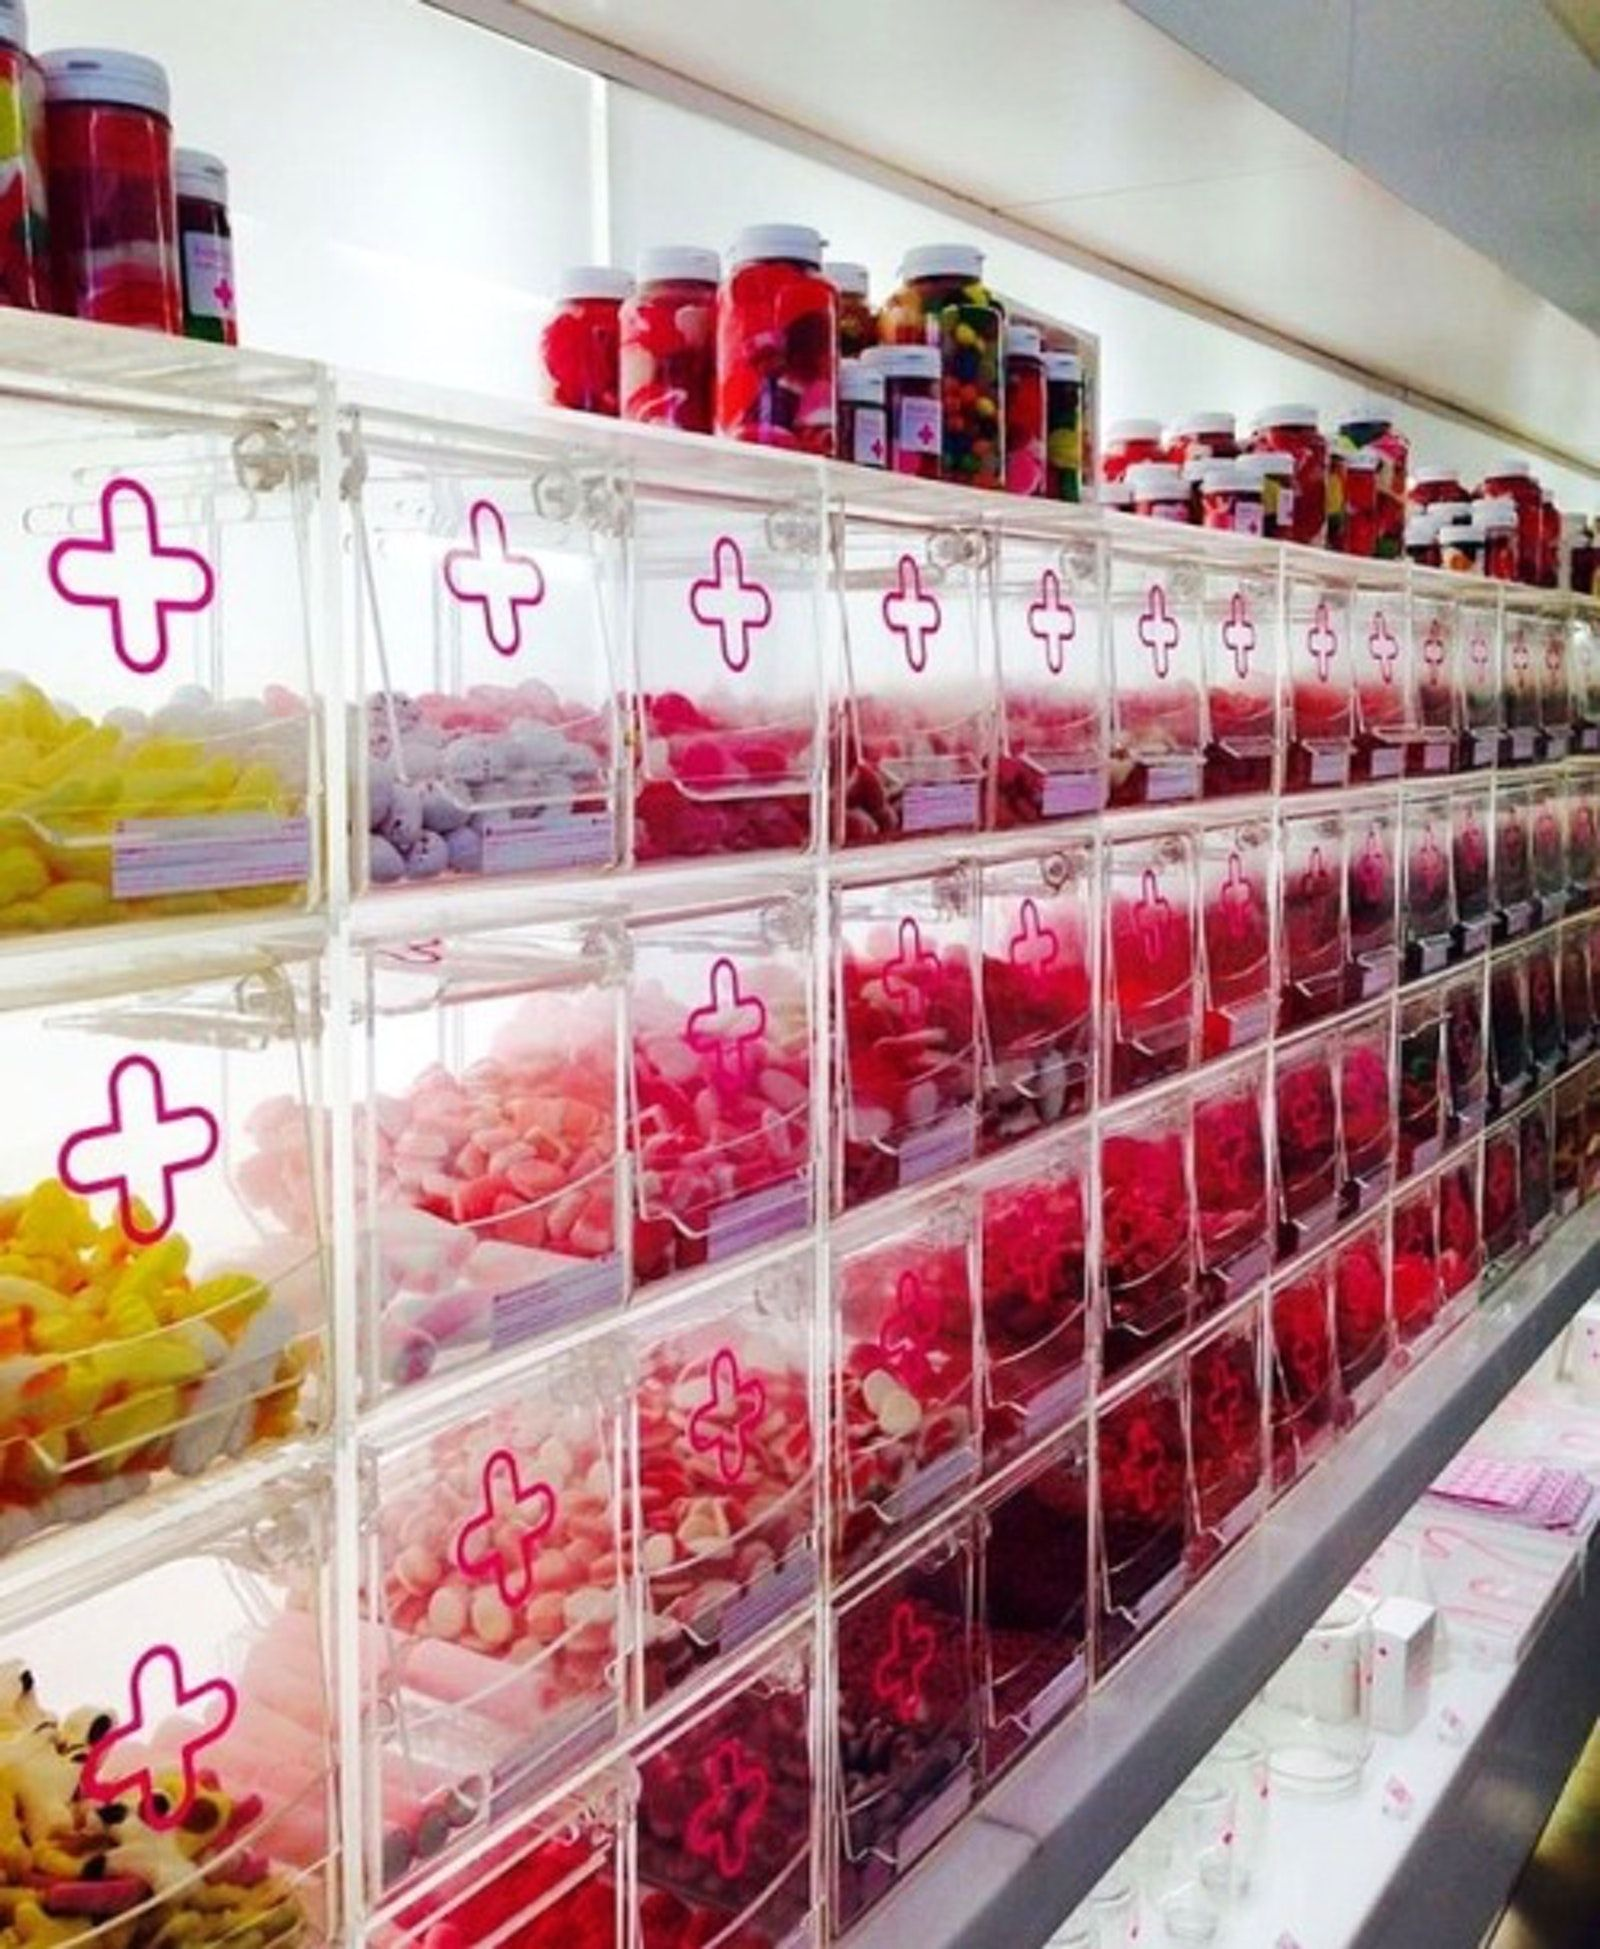 A Candy Store Shaped Like A Pharmacy In Barcelona Candy Store Candy Store Design Candy Shop